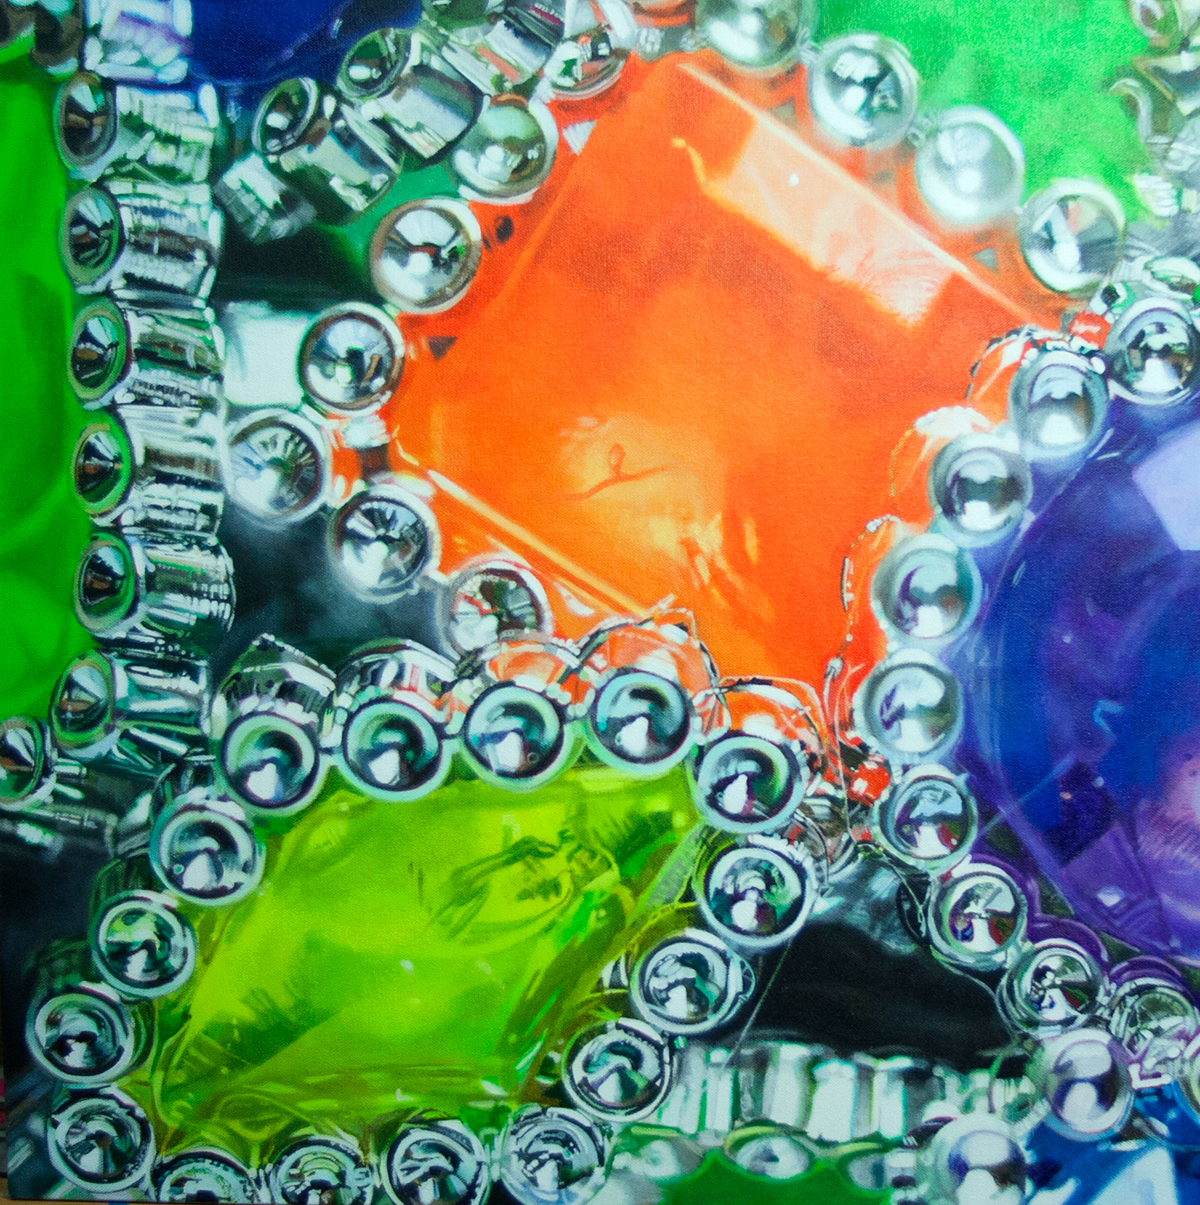 painting of plastic party rings by LJ Lindhurst